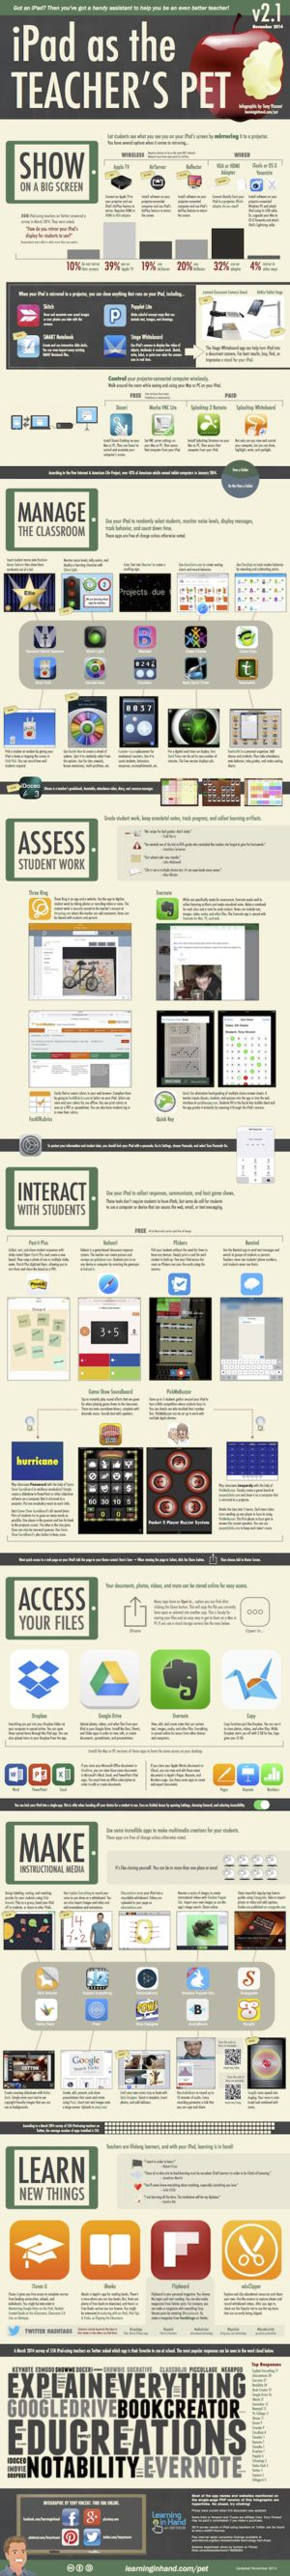 The ways that an Ipad can help a teacher -- even when you have just one! Via Tony Vincent